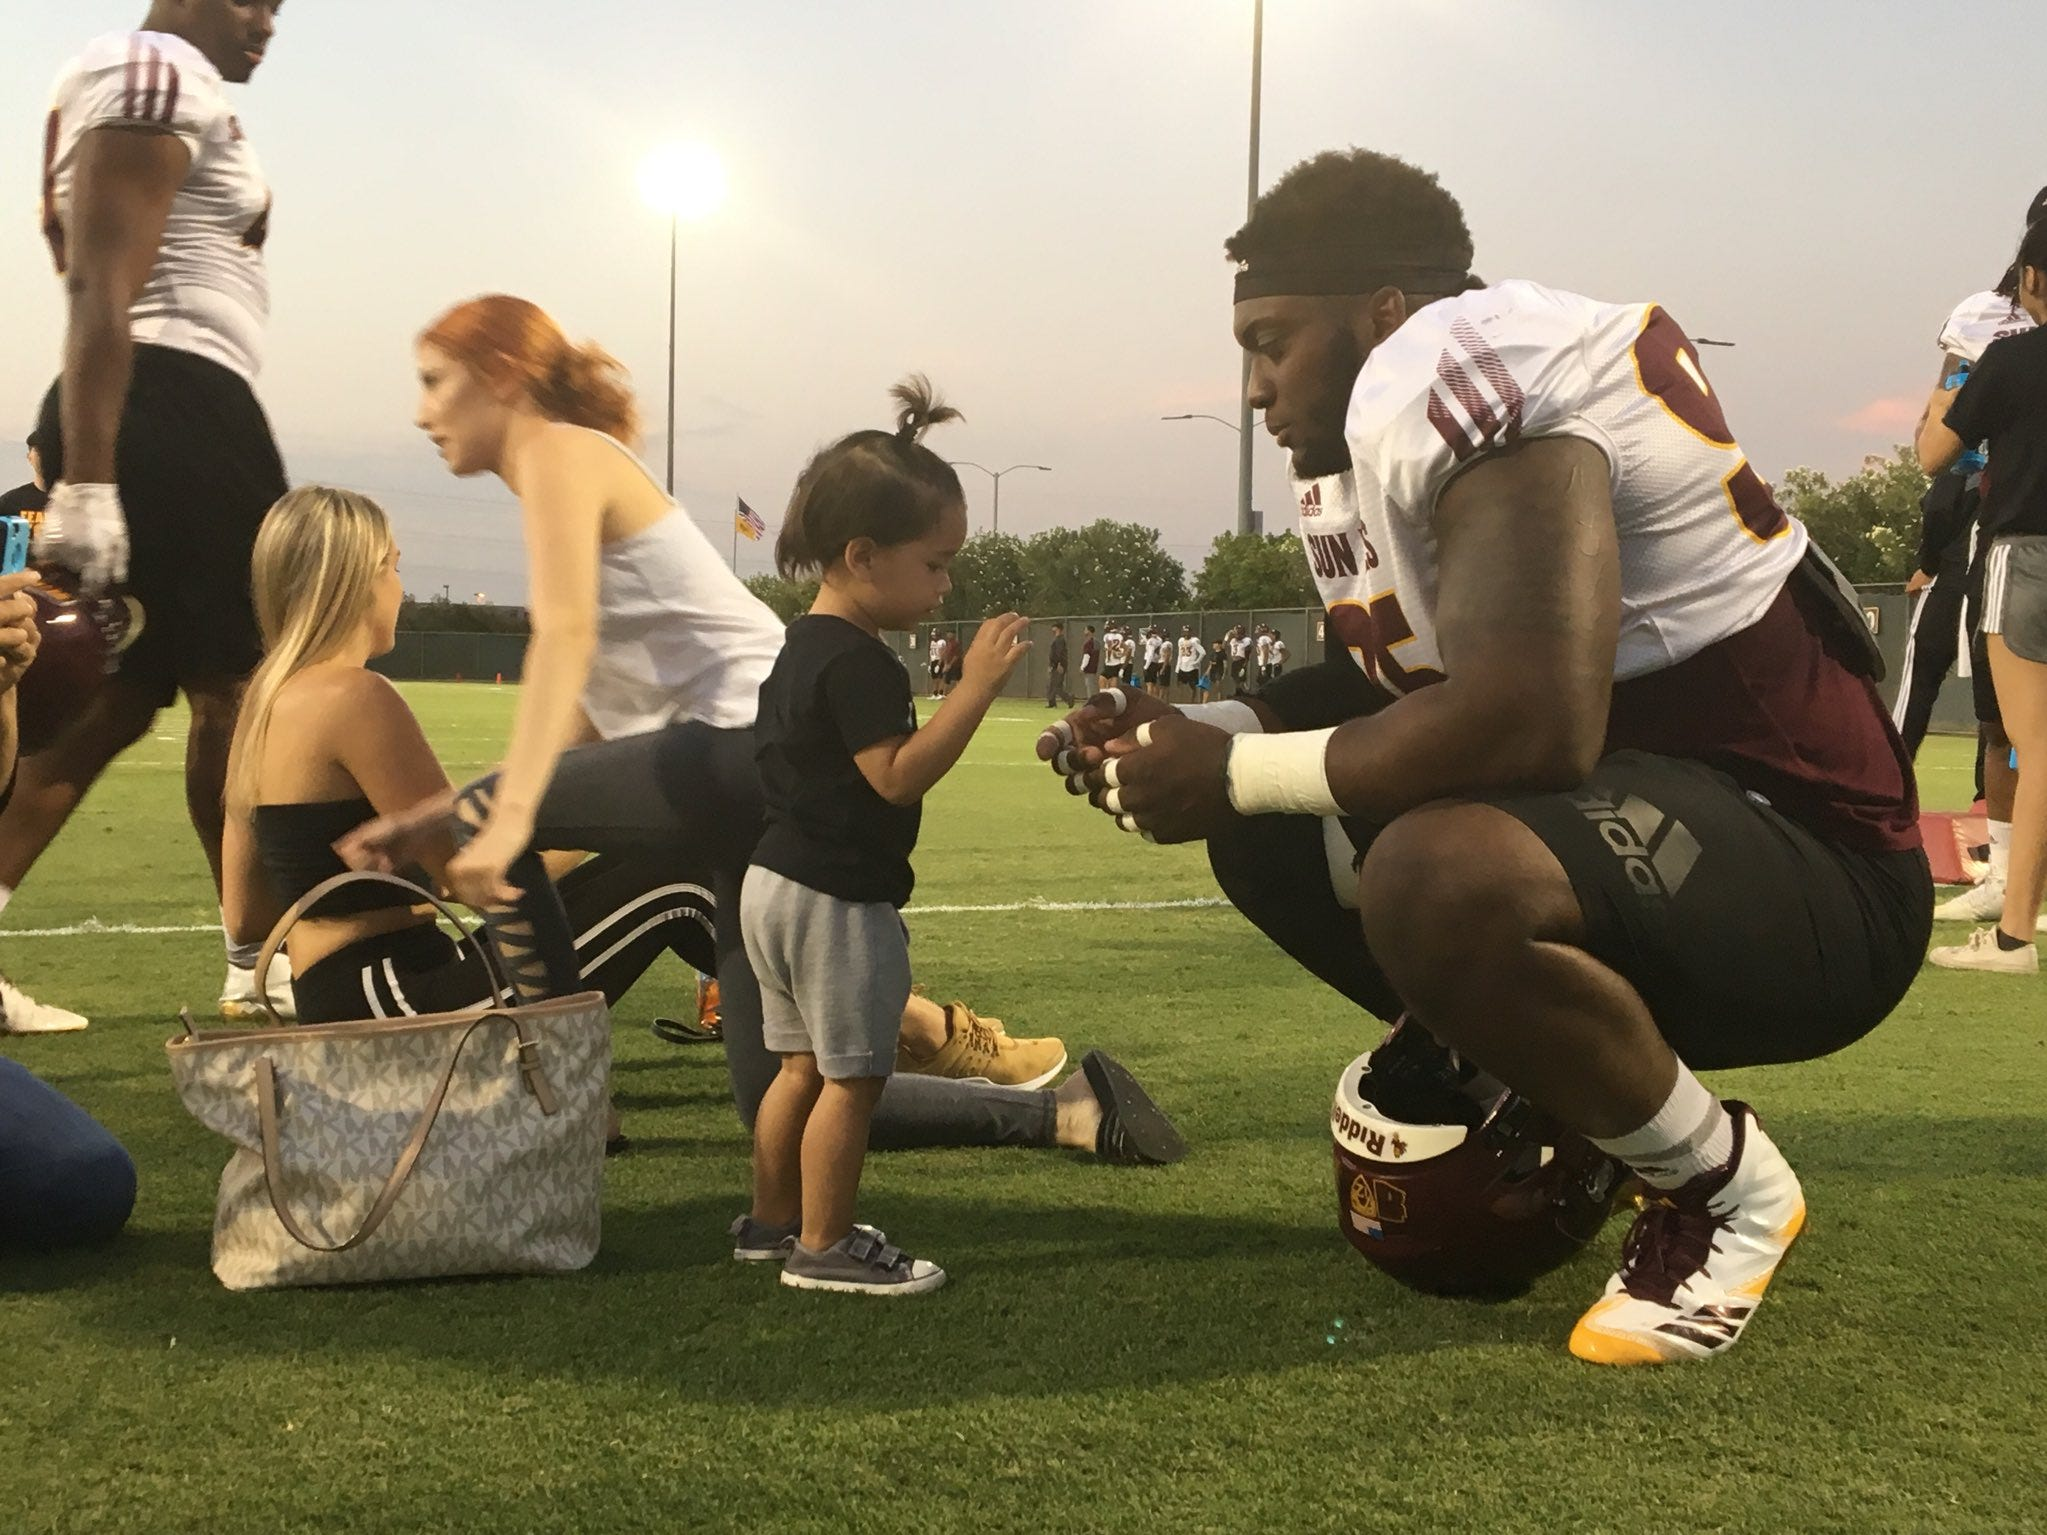 ASU defensive lineman Renell Wren talks to a small ASU fan at practice on Aug. 7, 2018.